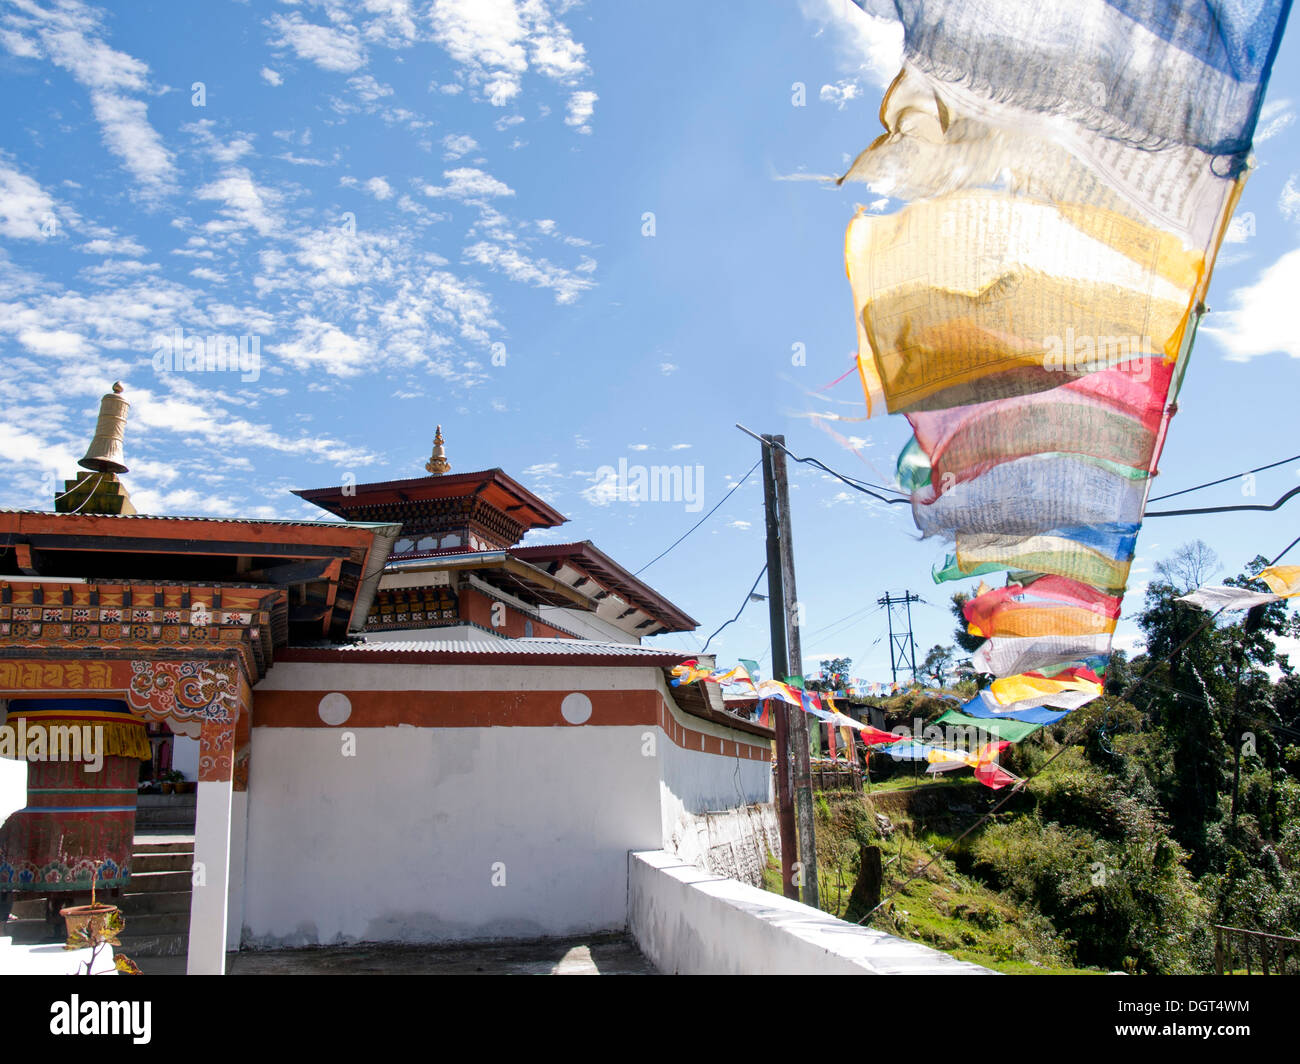 Small temple in Bhutan with colorful prayerflags during a sunny day - Stock Image